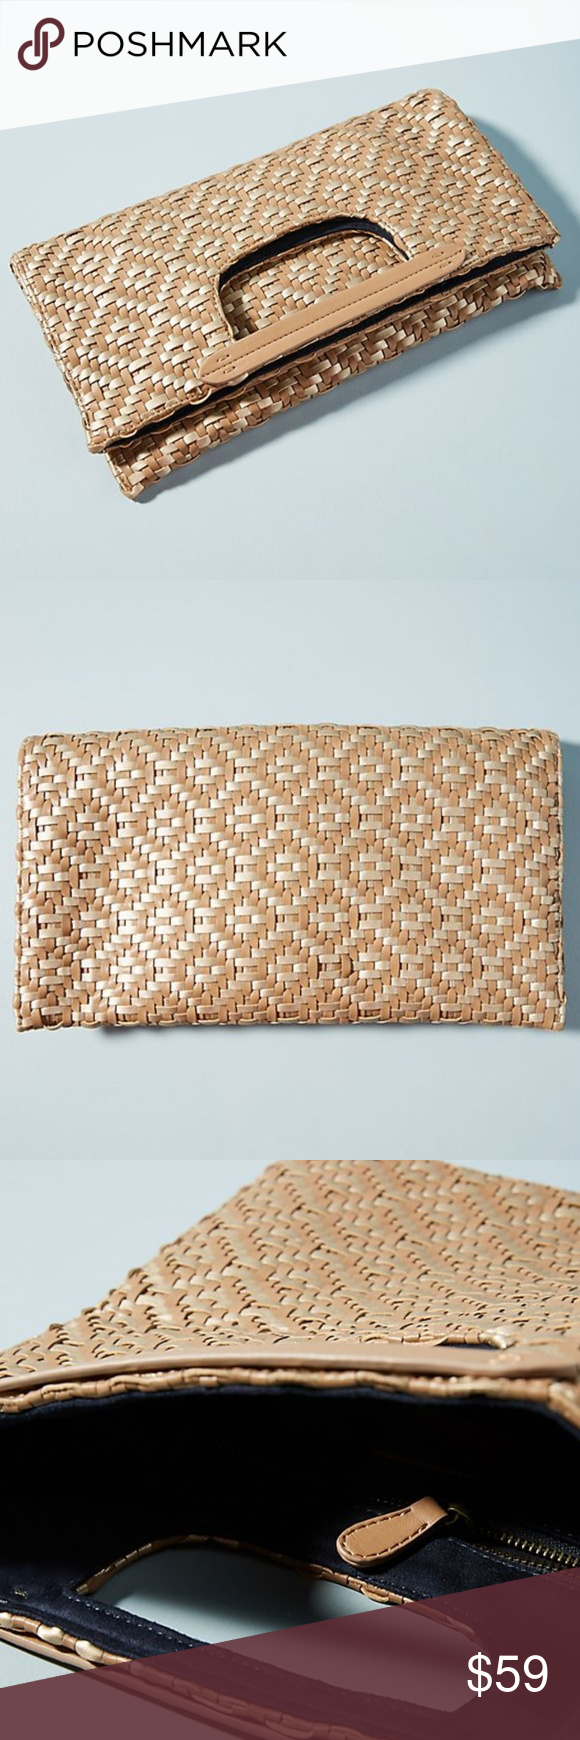 9107f7f6f3 NWT ANTHROPOLOGIE Cara Woven Foldover Clutch Brand new with tags NWT  ANTHROPOLOGIE Deux Lux Cara Woven